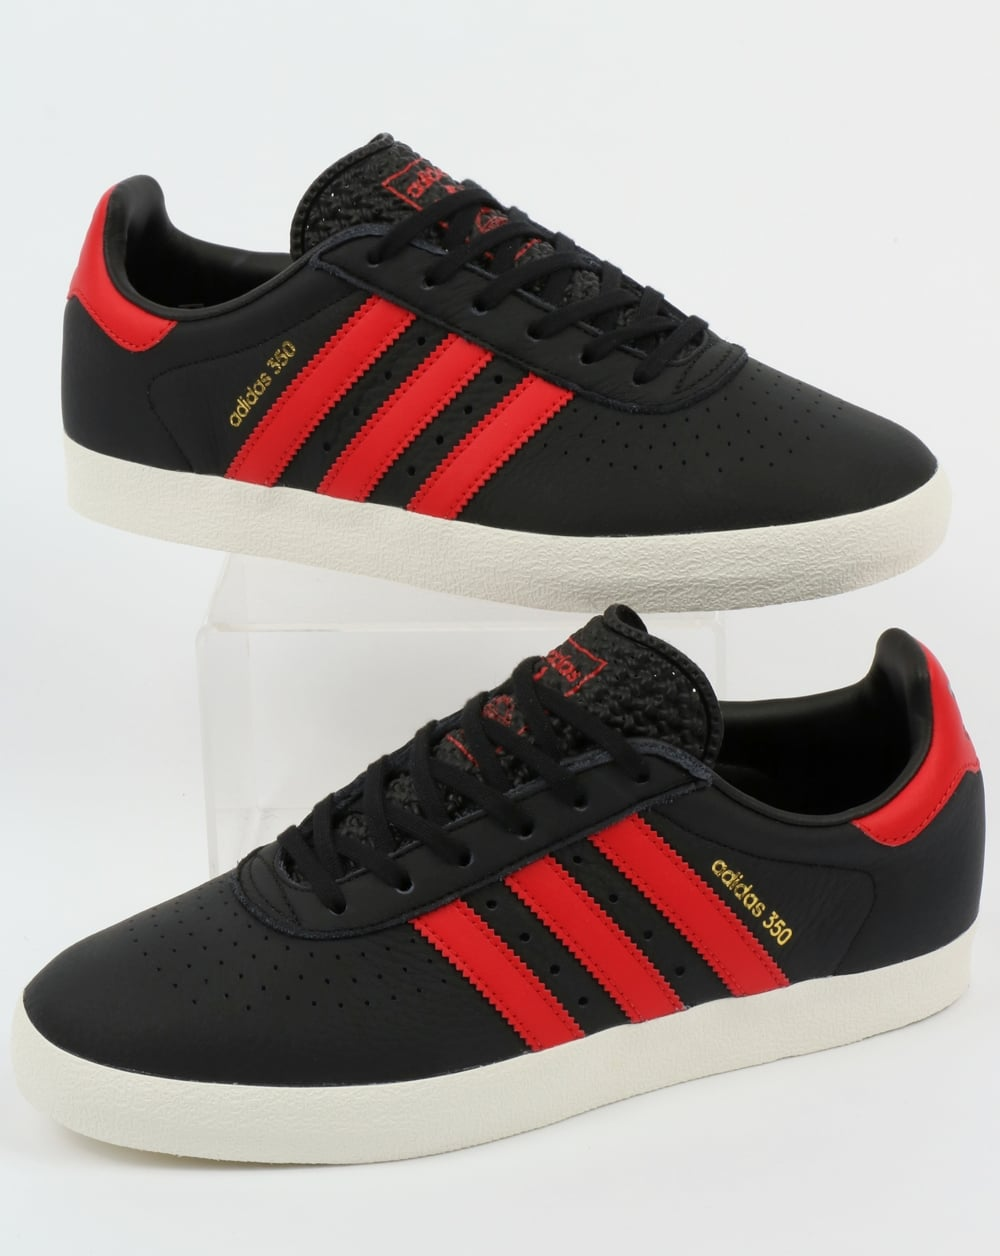 men's adidas shoes black and red